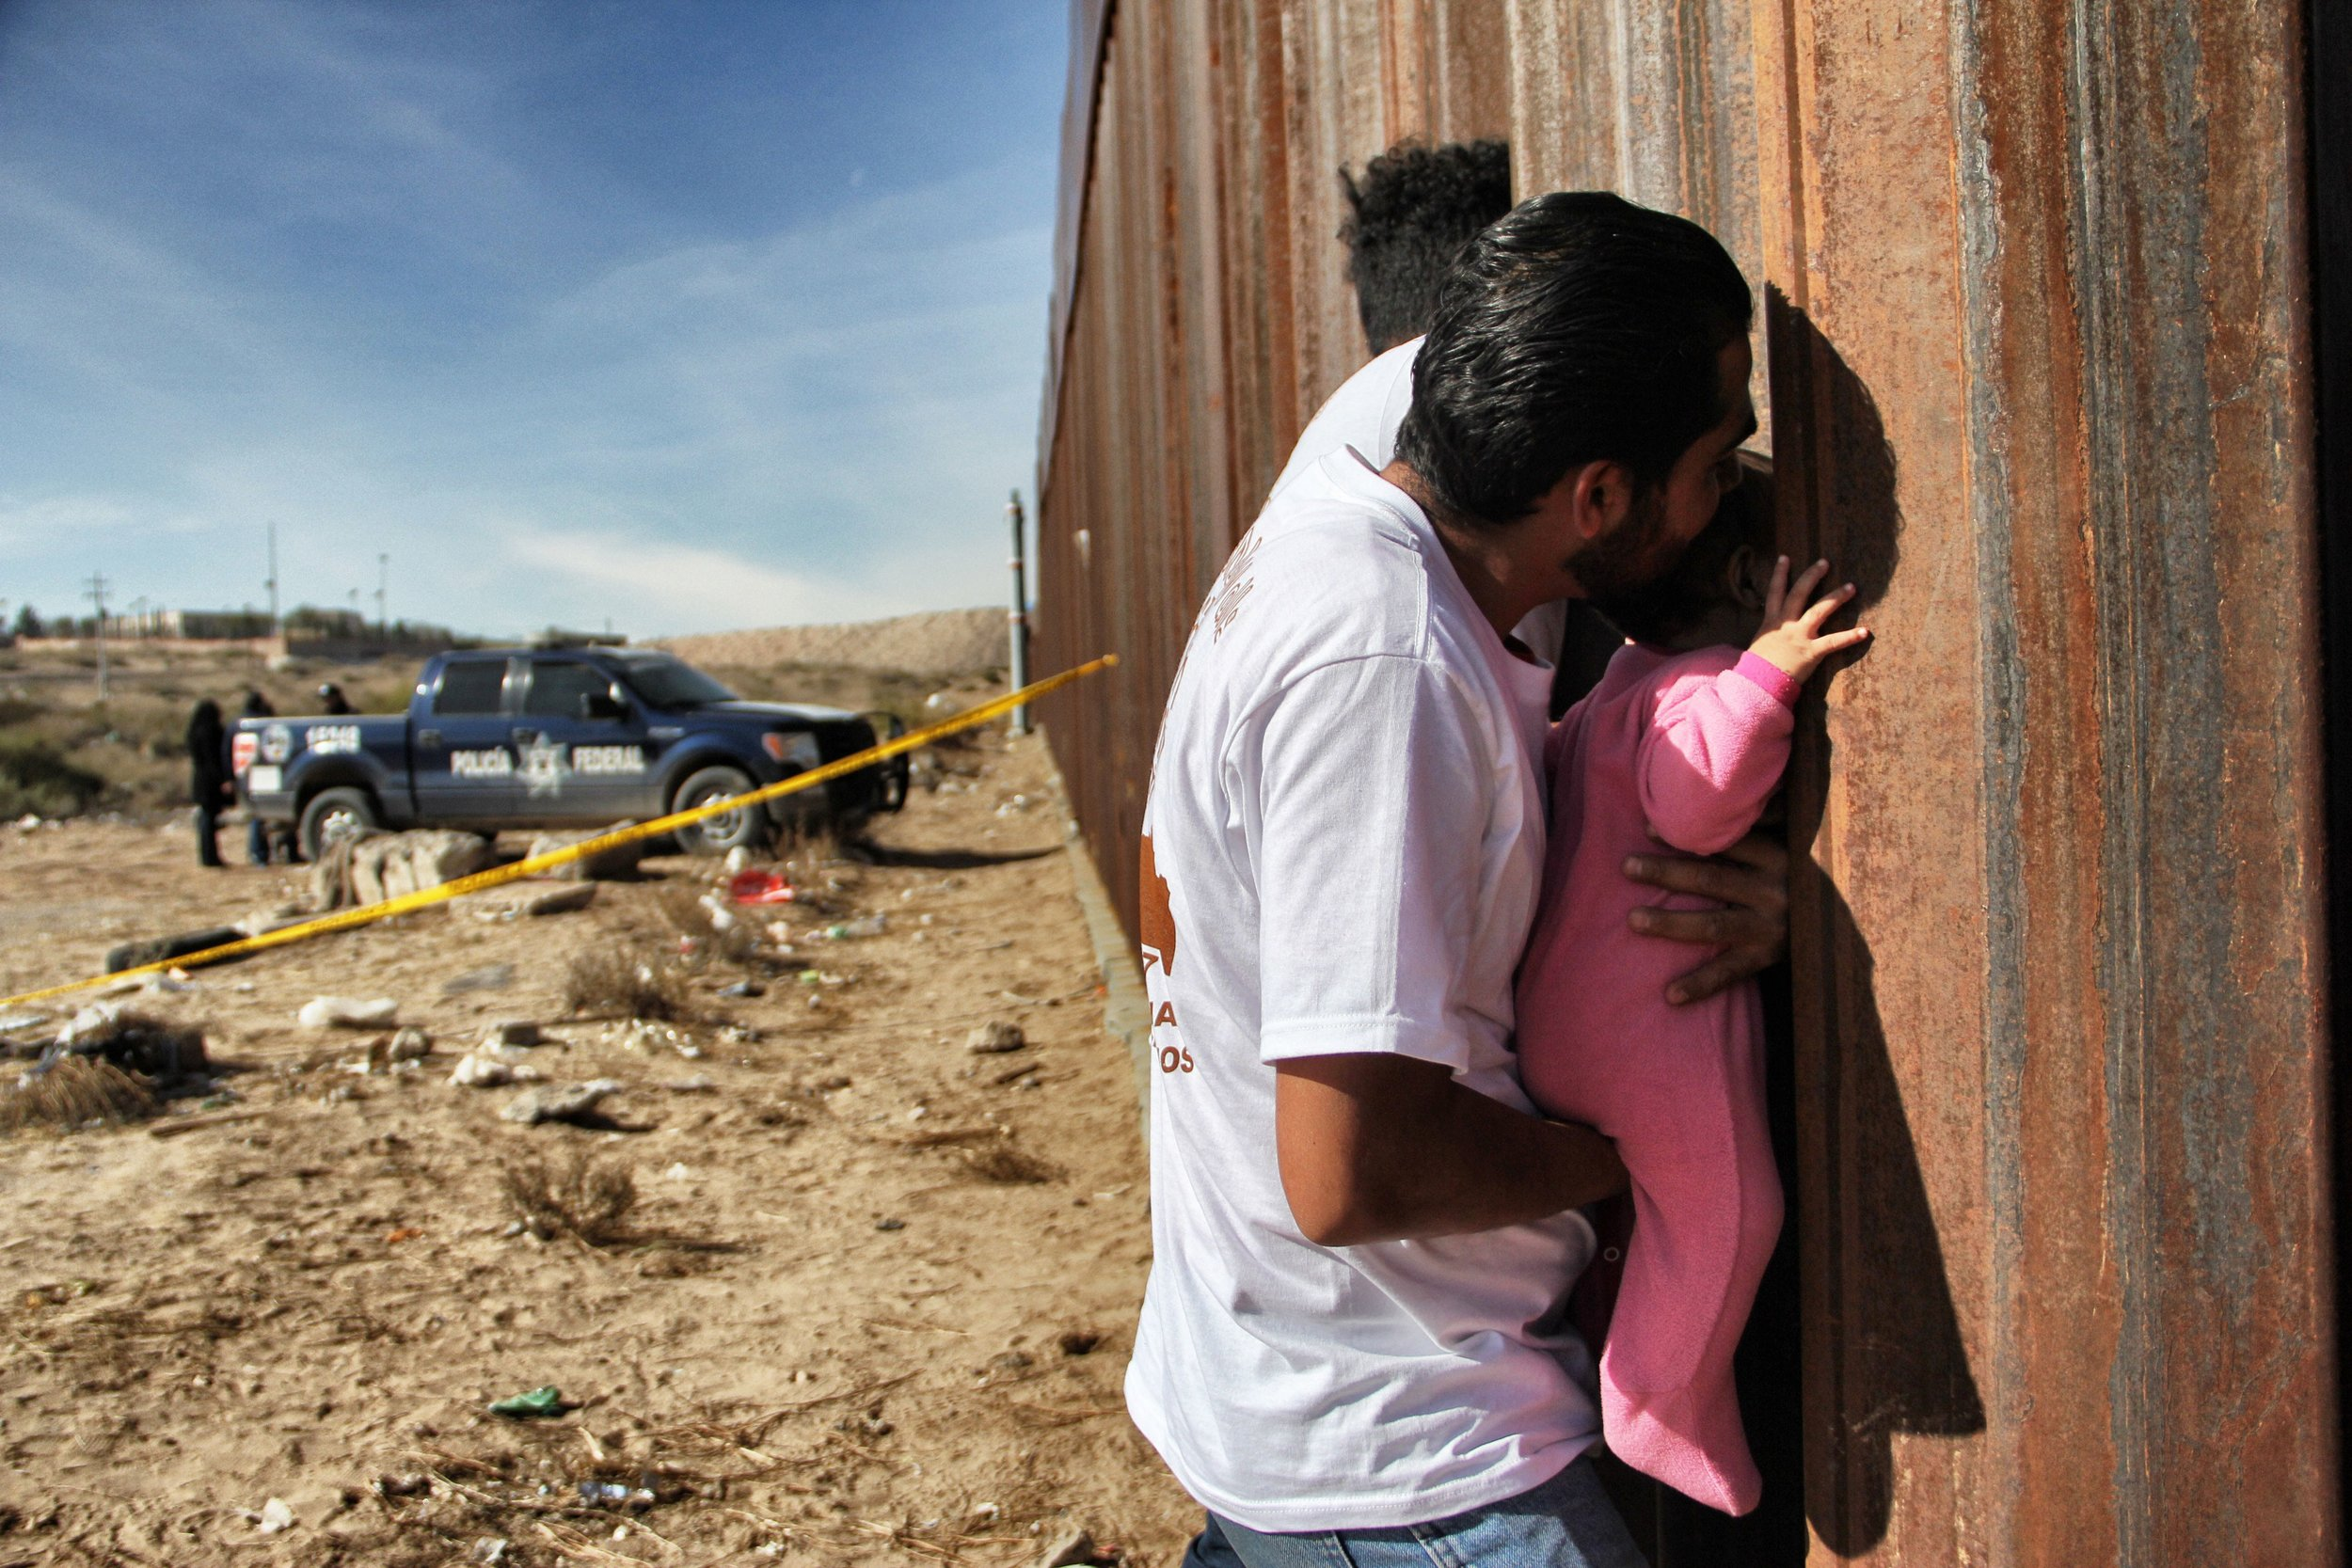 A man holds a baby up to the border wall between Mexico and United States. Photo Credit: HERIKA MARTINEZ/AFP/Getty Images.